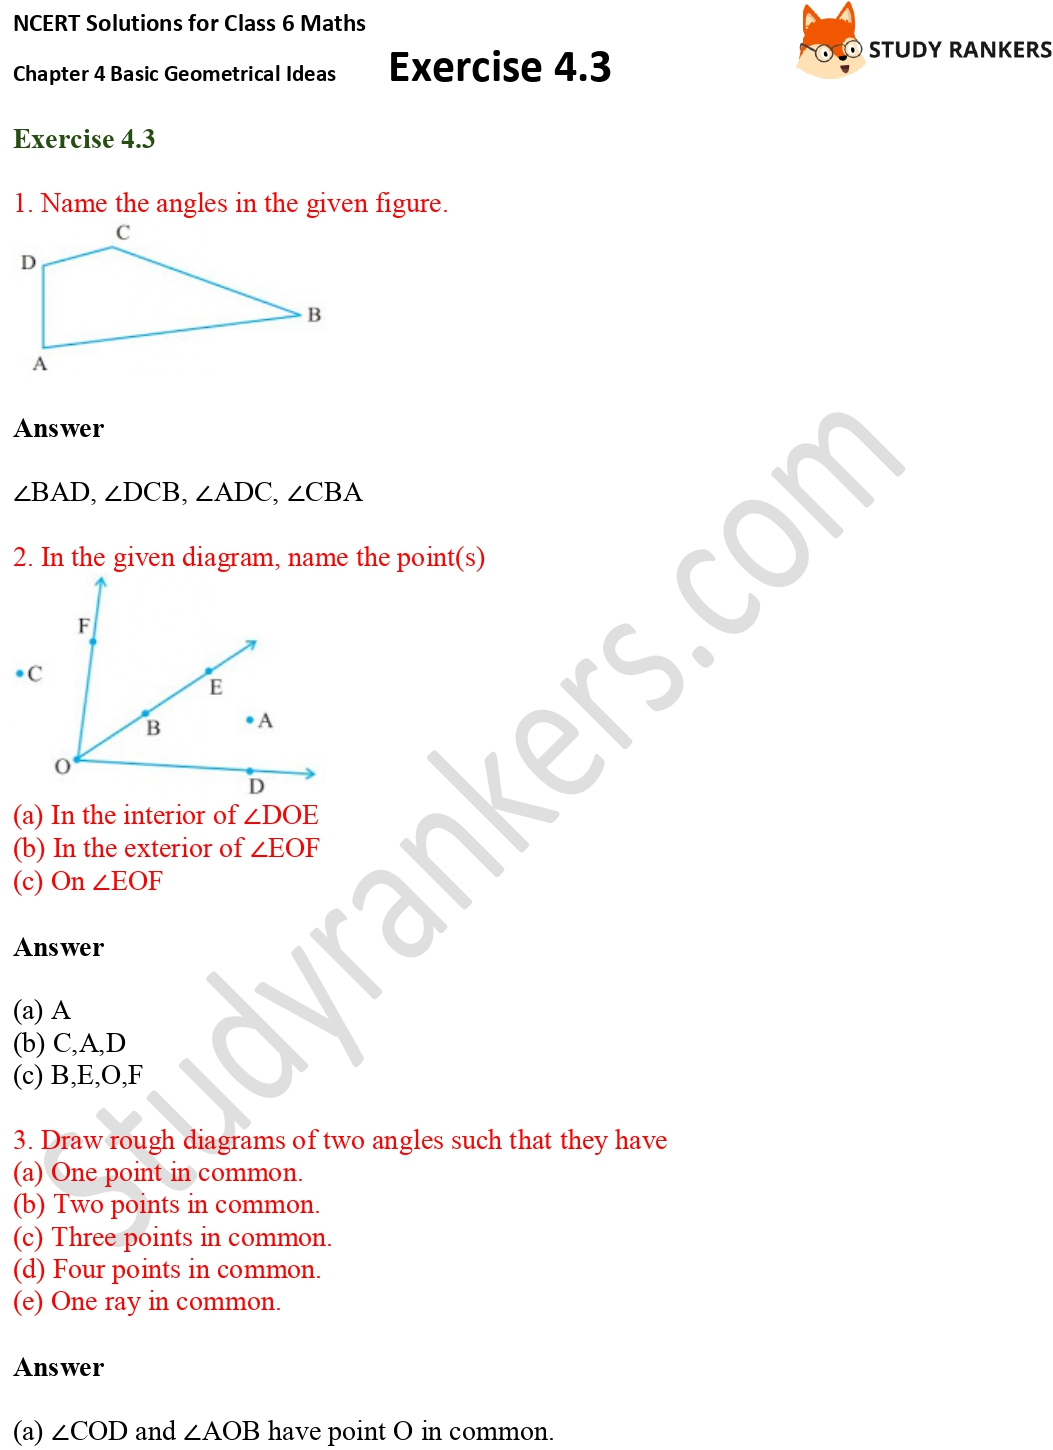 NCERT Solutions for Class 6 Maths Chapter 4 Basic Geometrical Ideas Exercise 4.3 Part 1